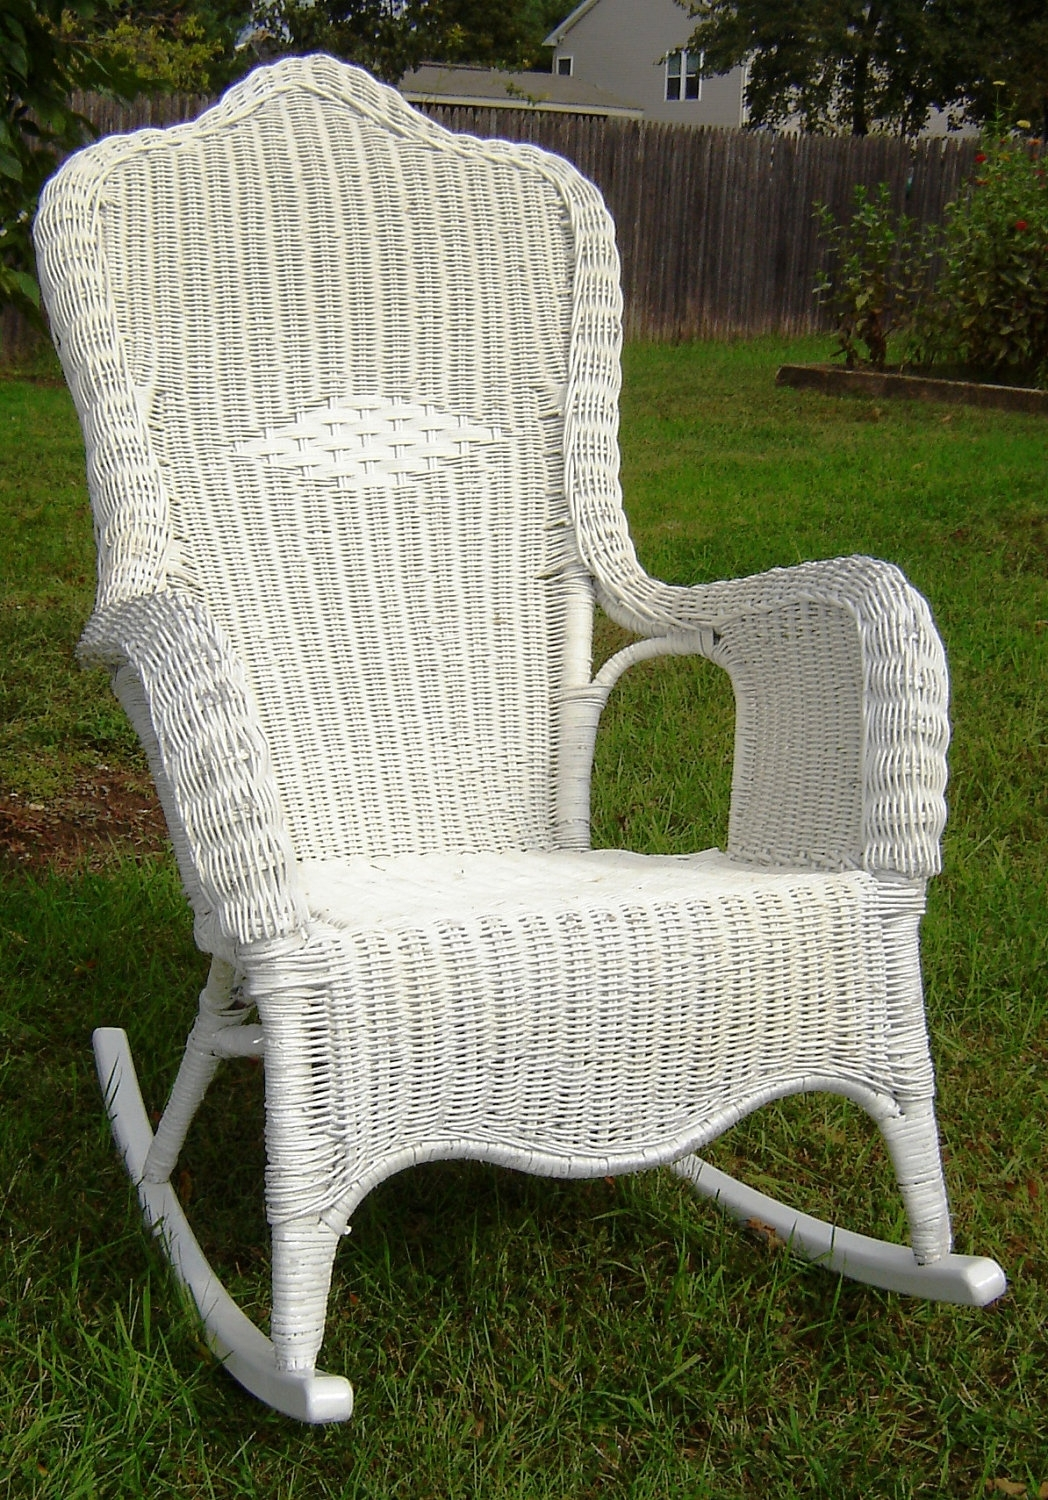 55 White Wicker Rocking Chair, White Wicker Rocking Chair Inside 2018 White Wicker Rocking Chair For Nursery (View 4 of 20)